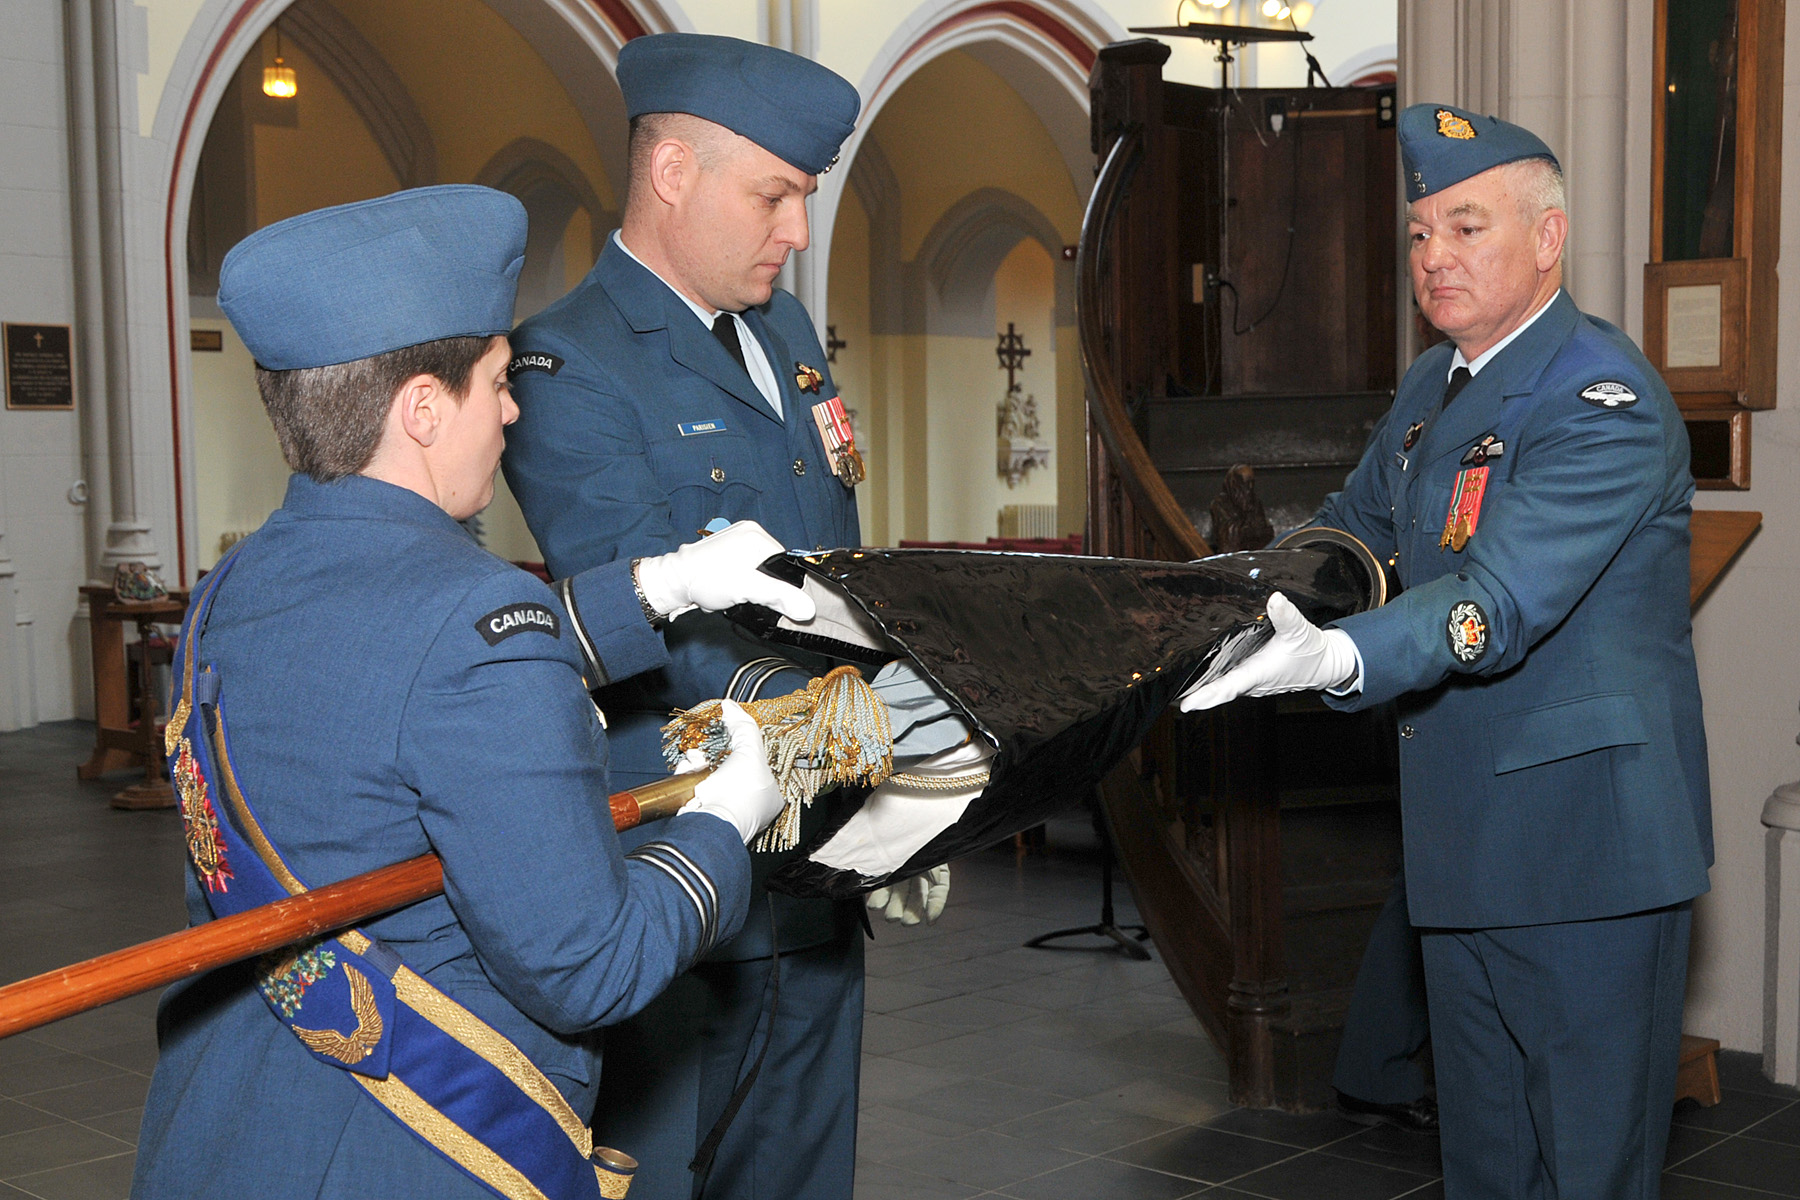 Major Serge Parisien of 434 Operational Test and Evaluation Squadron (centre) assists Captain Julie Perreault (left) and Master Warrant Officer Rene Forster in recasing the 434 Squadron colour to move it from All Saints Cathedral in Halifax, Nova Scotia, to the reborn squadron's headquarters in Trenton, Ontario. PHOTO: Warrant Officer Fran Gaudet, DND Photo